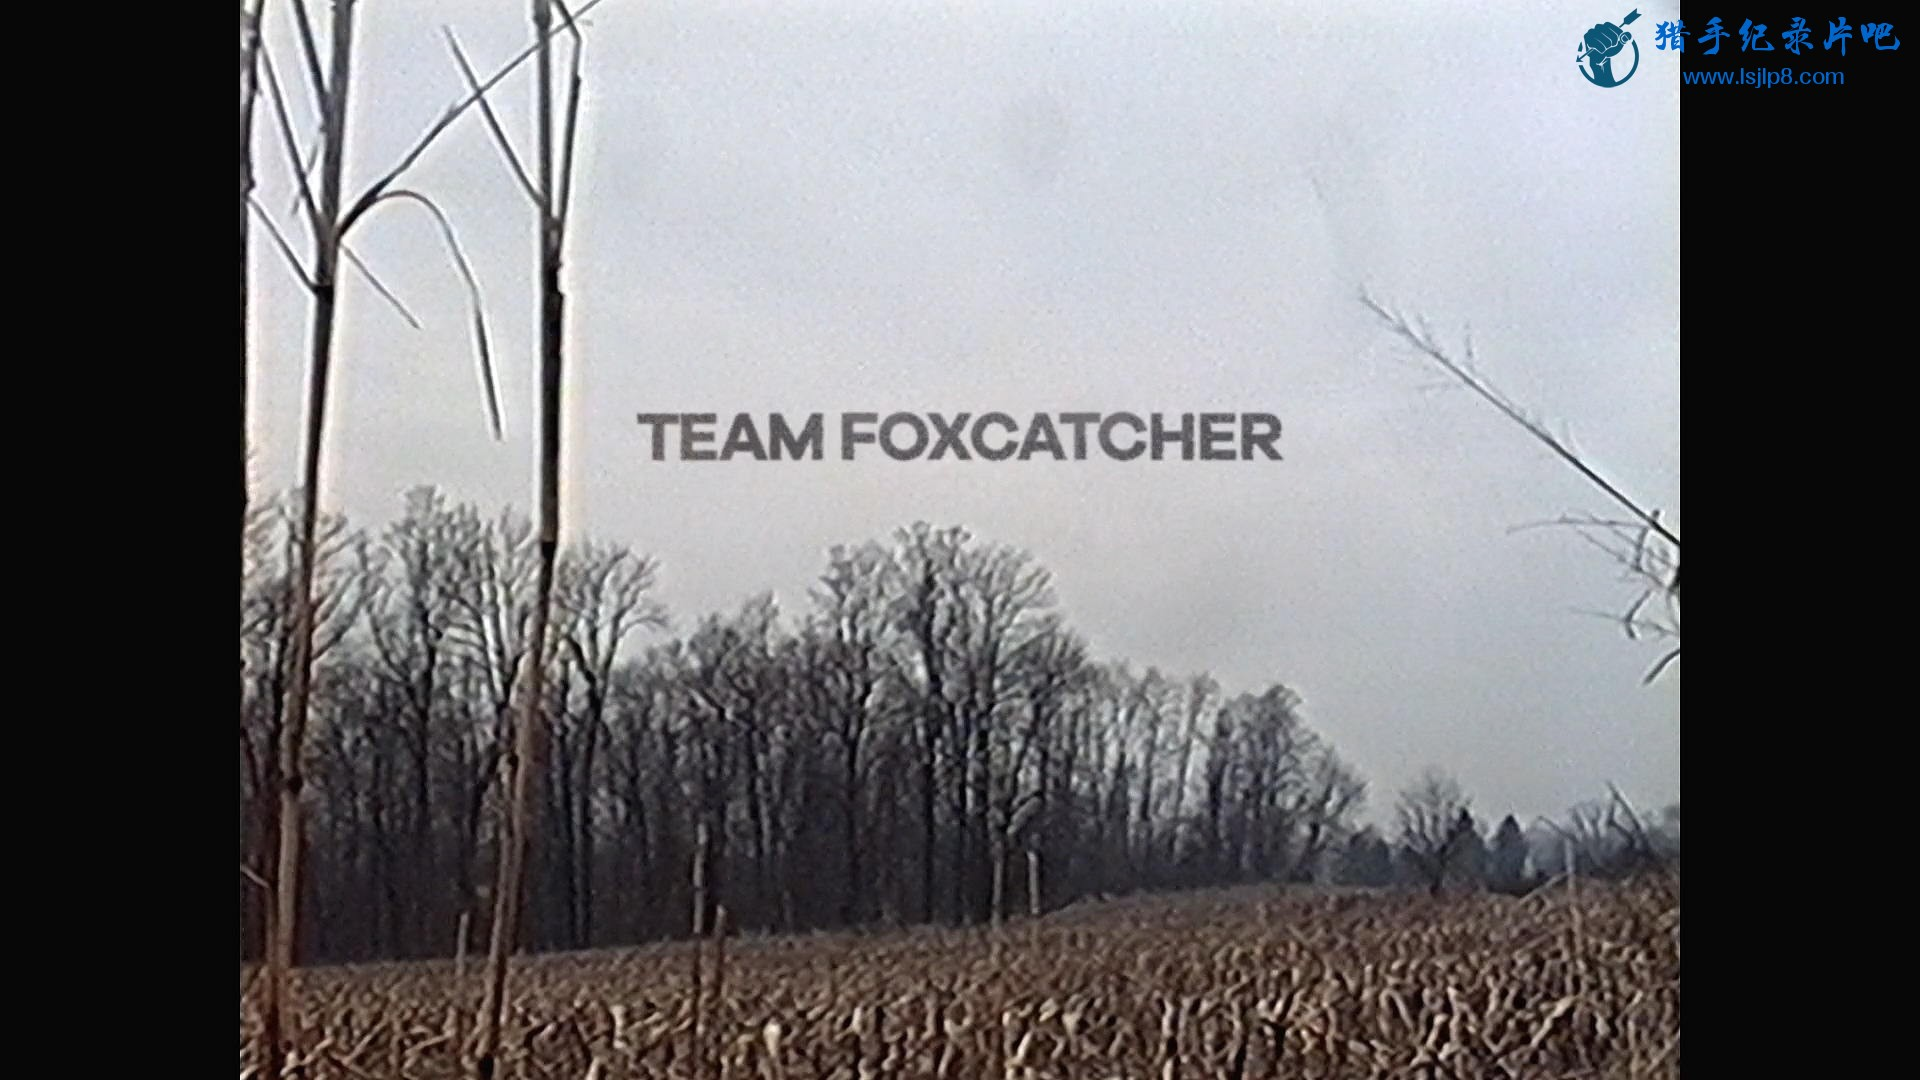 team.foxcatcher.2016.1080p.web.x264-strife.mkv_20200811_110017.964_看图王.jpg